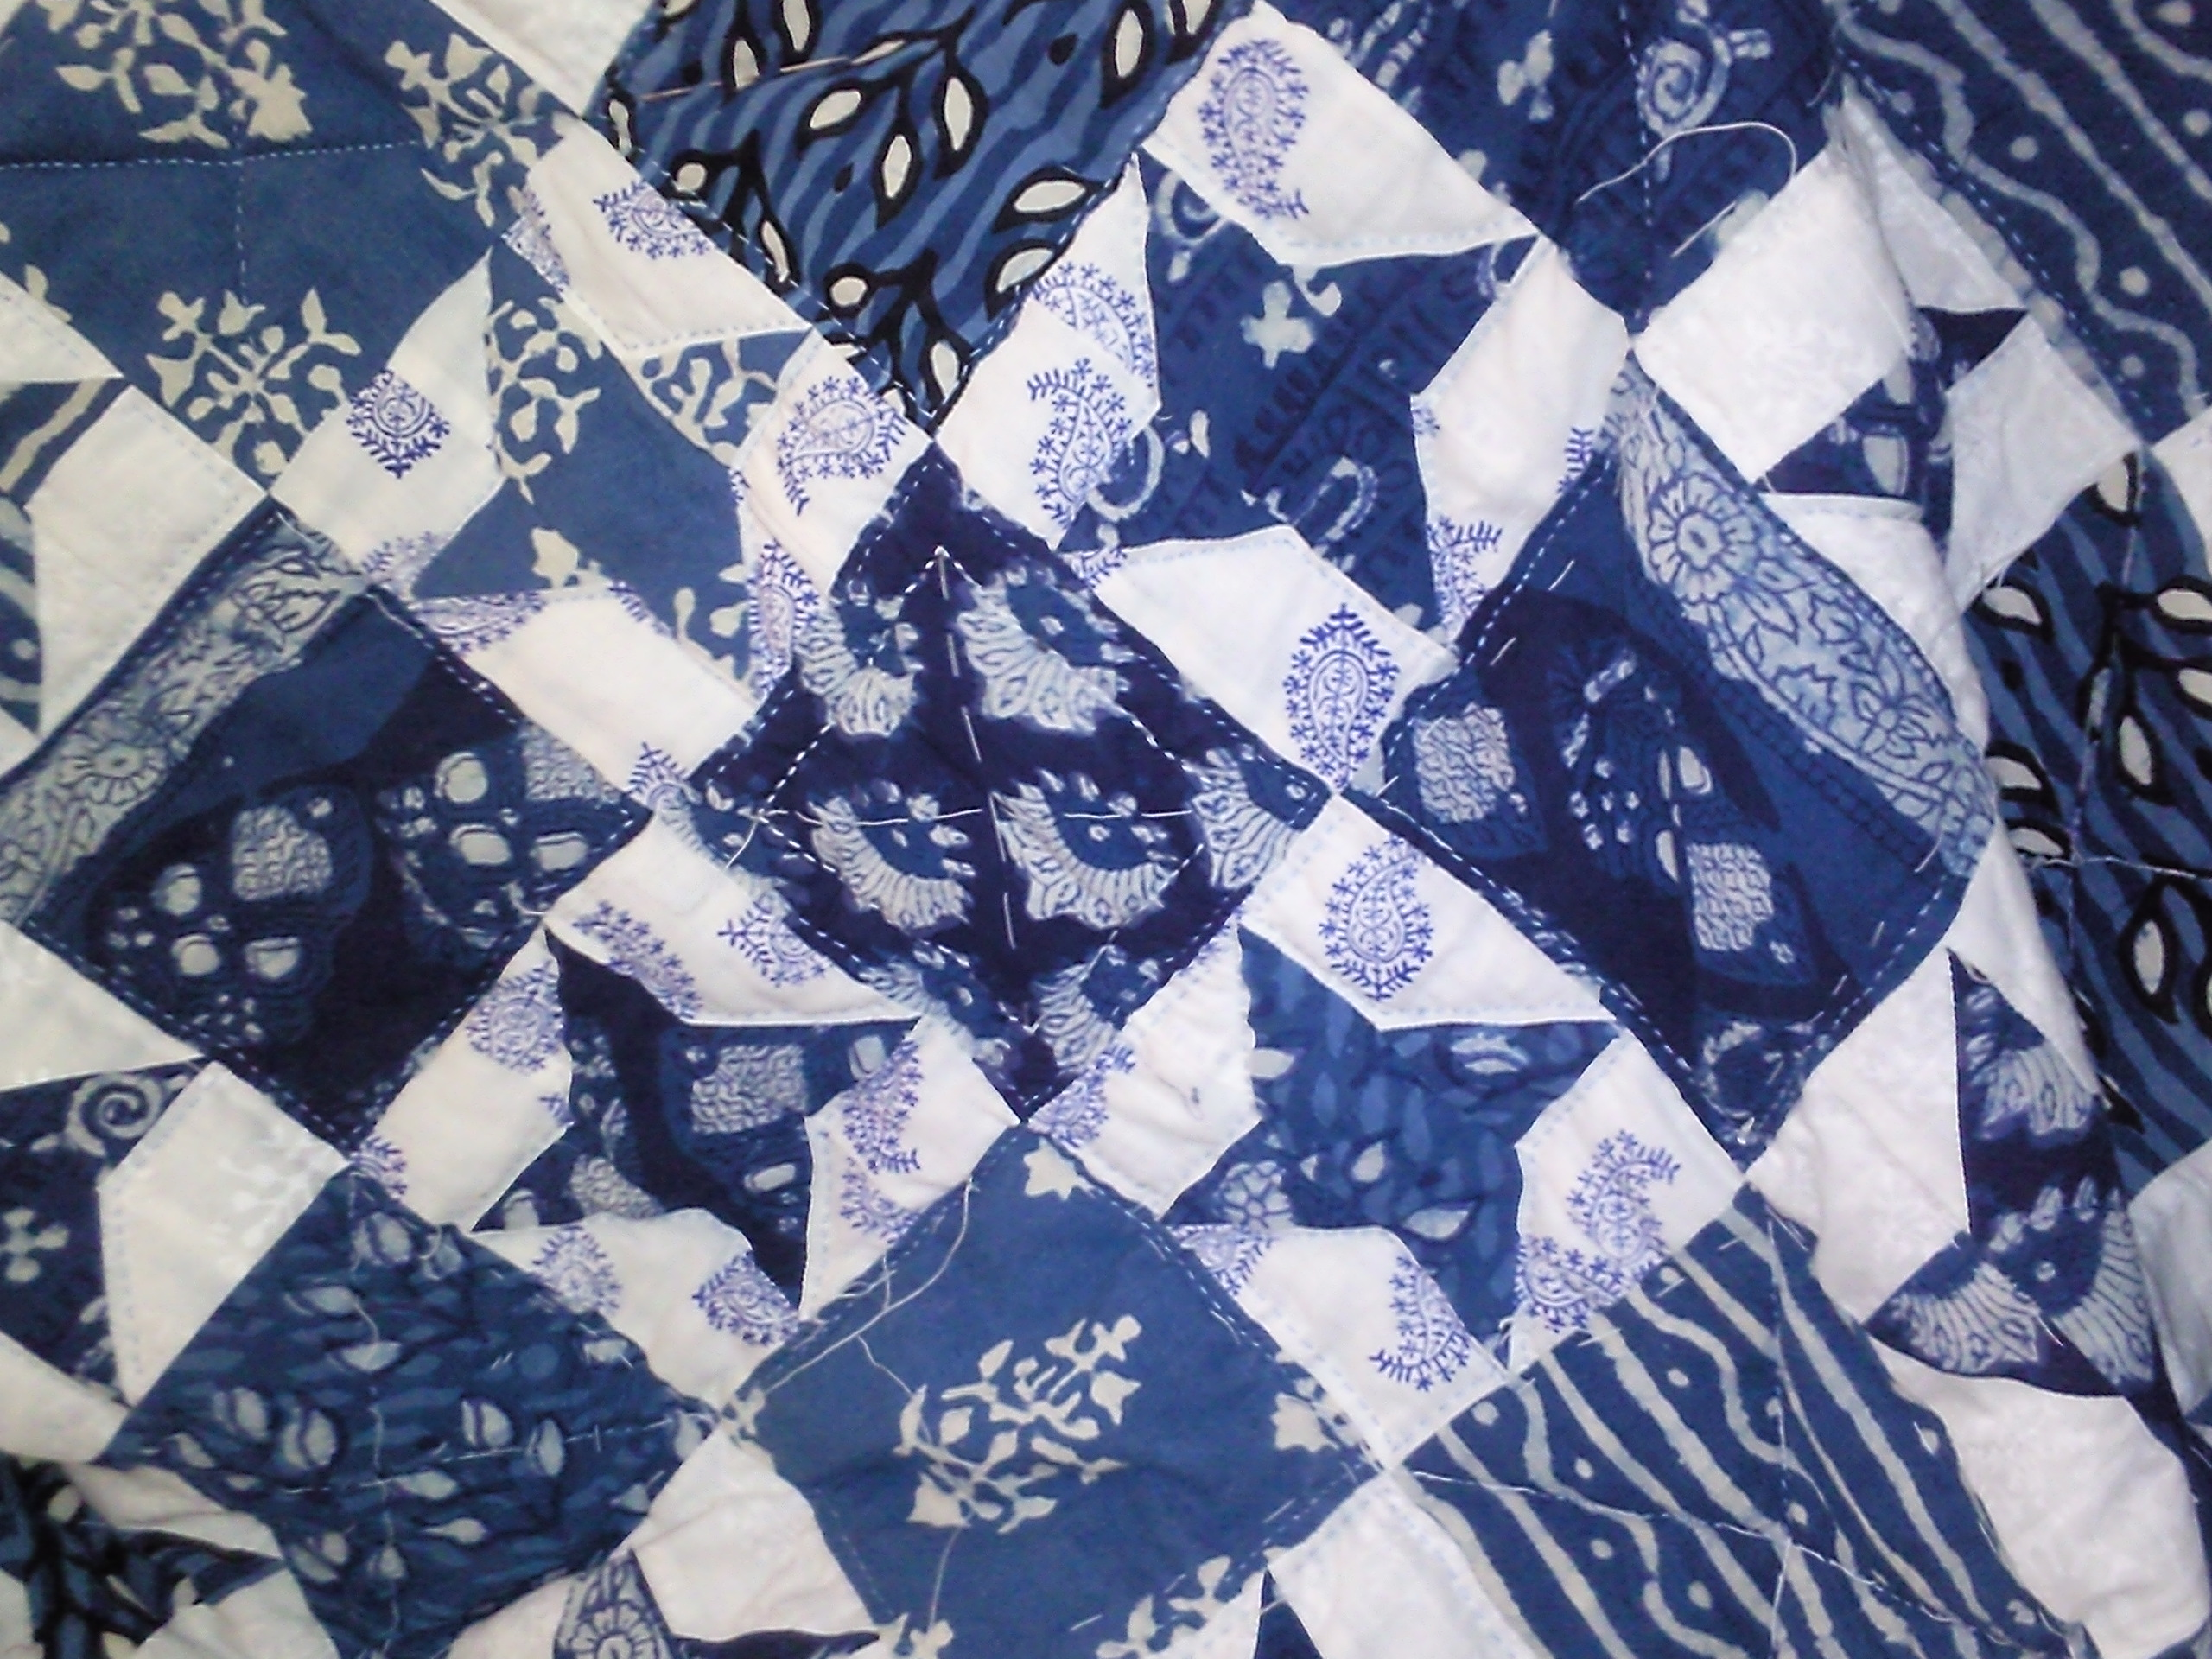 Detail from Tushar's Quilt